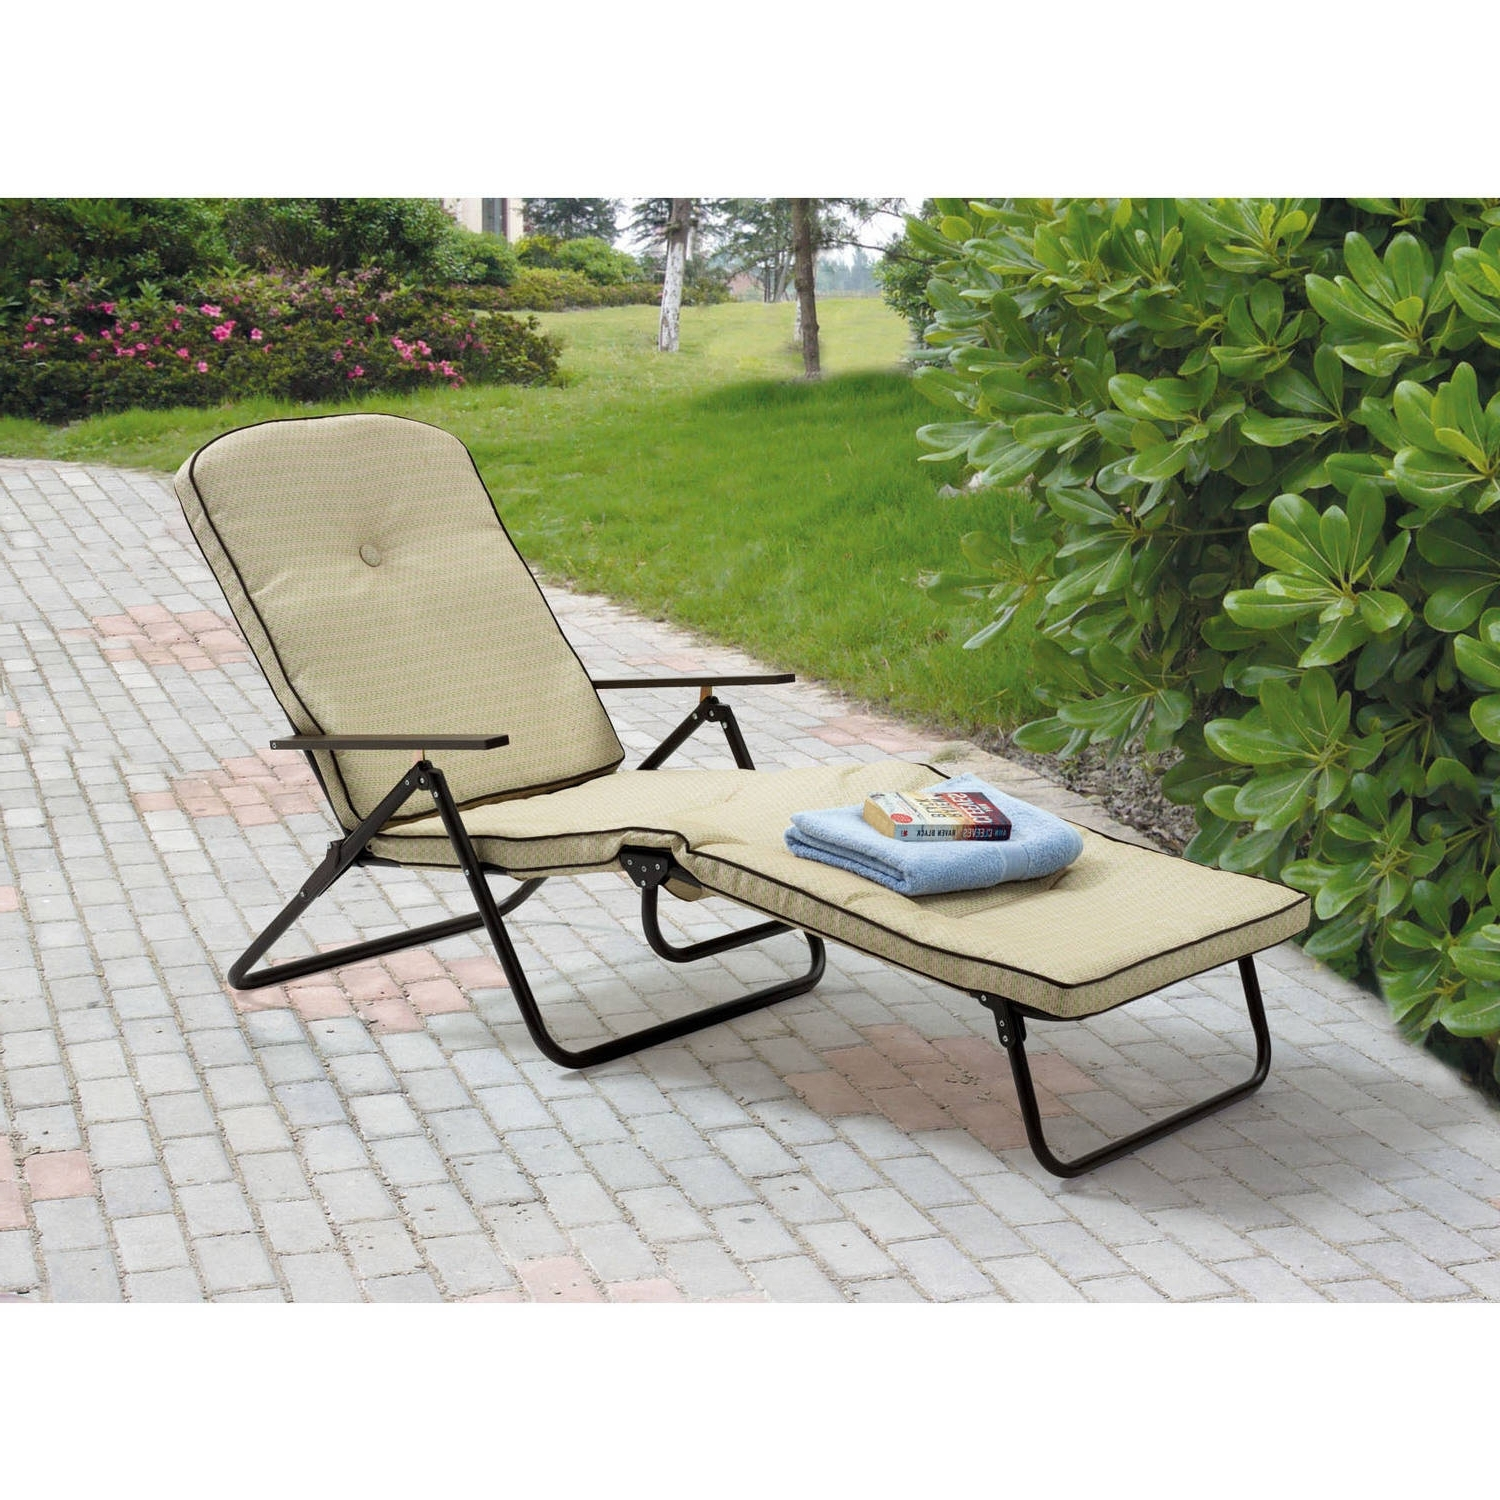 Cheap Folding Chaise Lounge Chairs For Outdoor Regarding Famous Mainstays Sand Dune Outdoor Padded Folding Chaise Lounge, Tan (View 8 of 15)